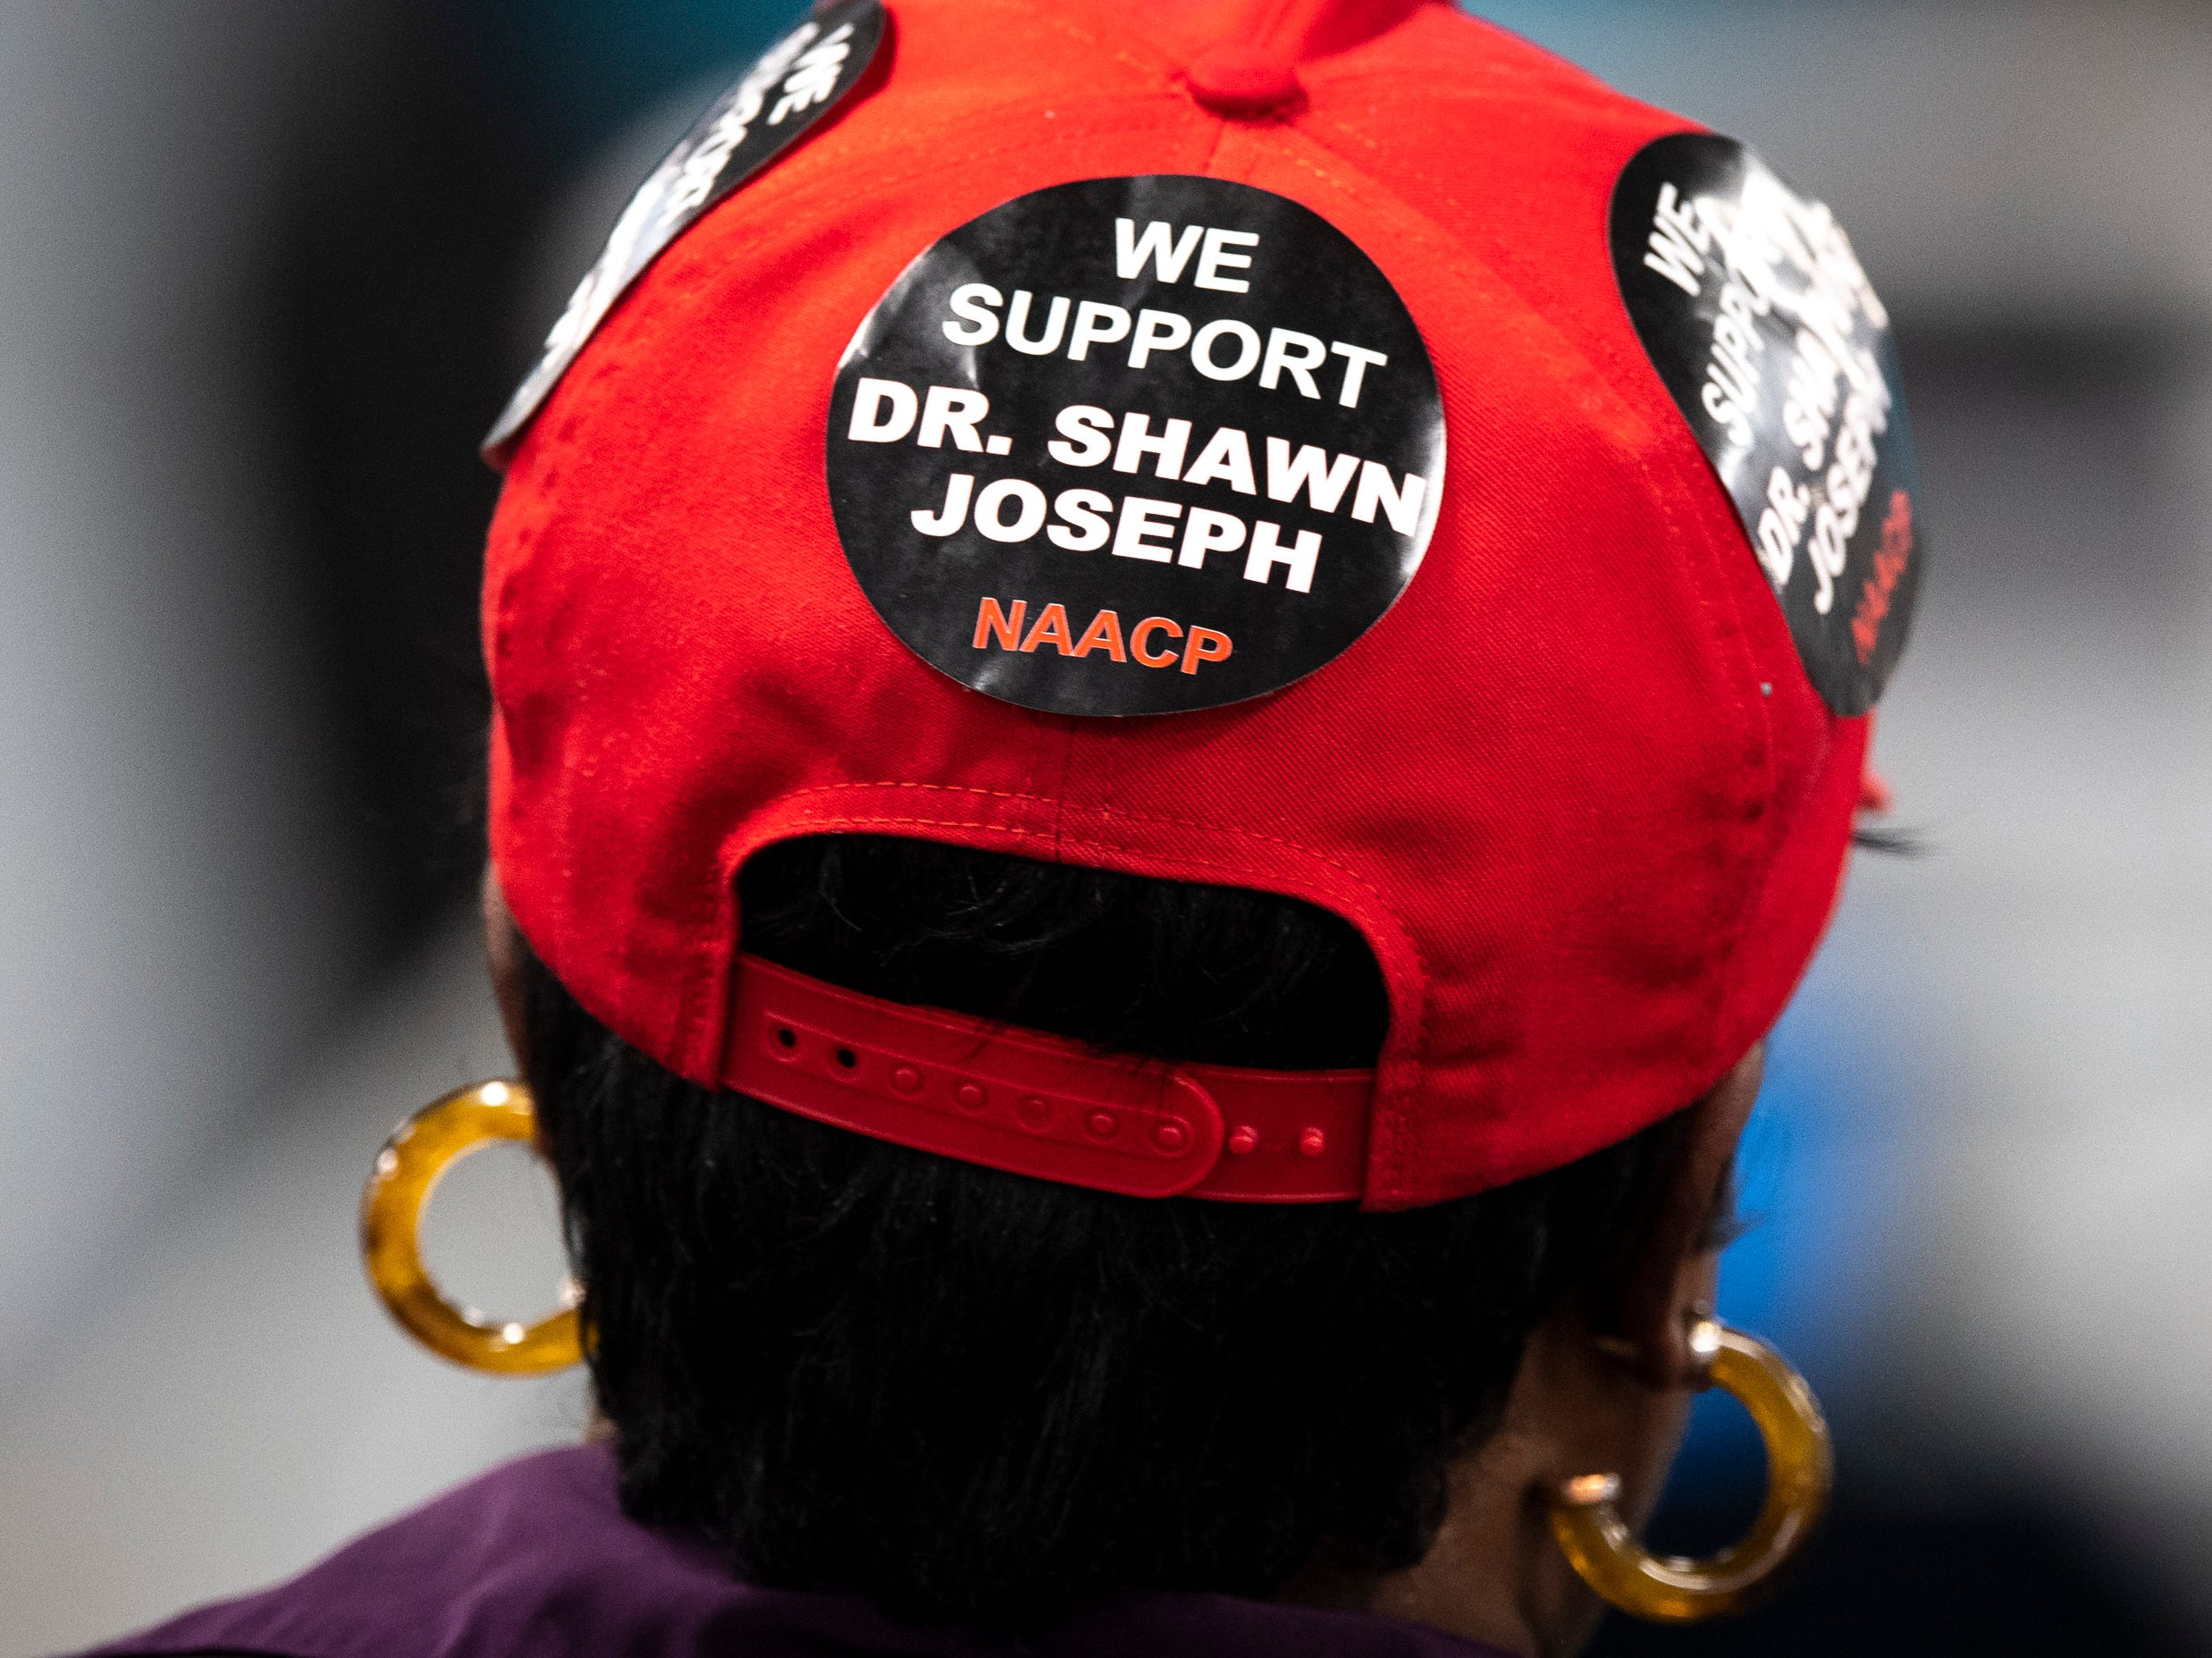 Supporters of Dr. Shawn Joseph listen as the Nashville school board discusses the deal to end the contract of director Shawn Joseph during the MNPS Board of Public Education meeting at the Administration Building of Metropolitan Public Schools in Nashville, Tenn., Tuesday, April 9, 2019.